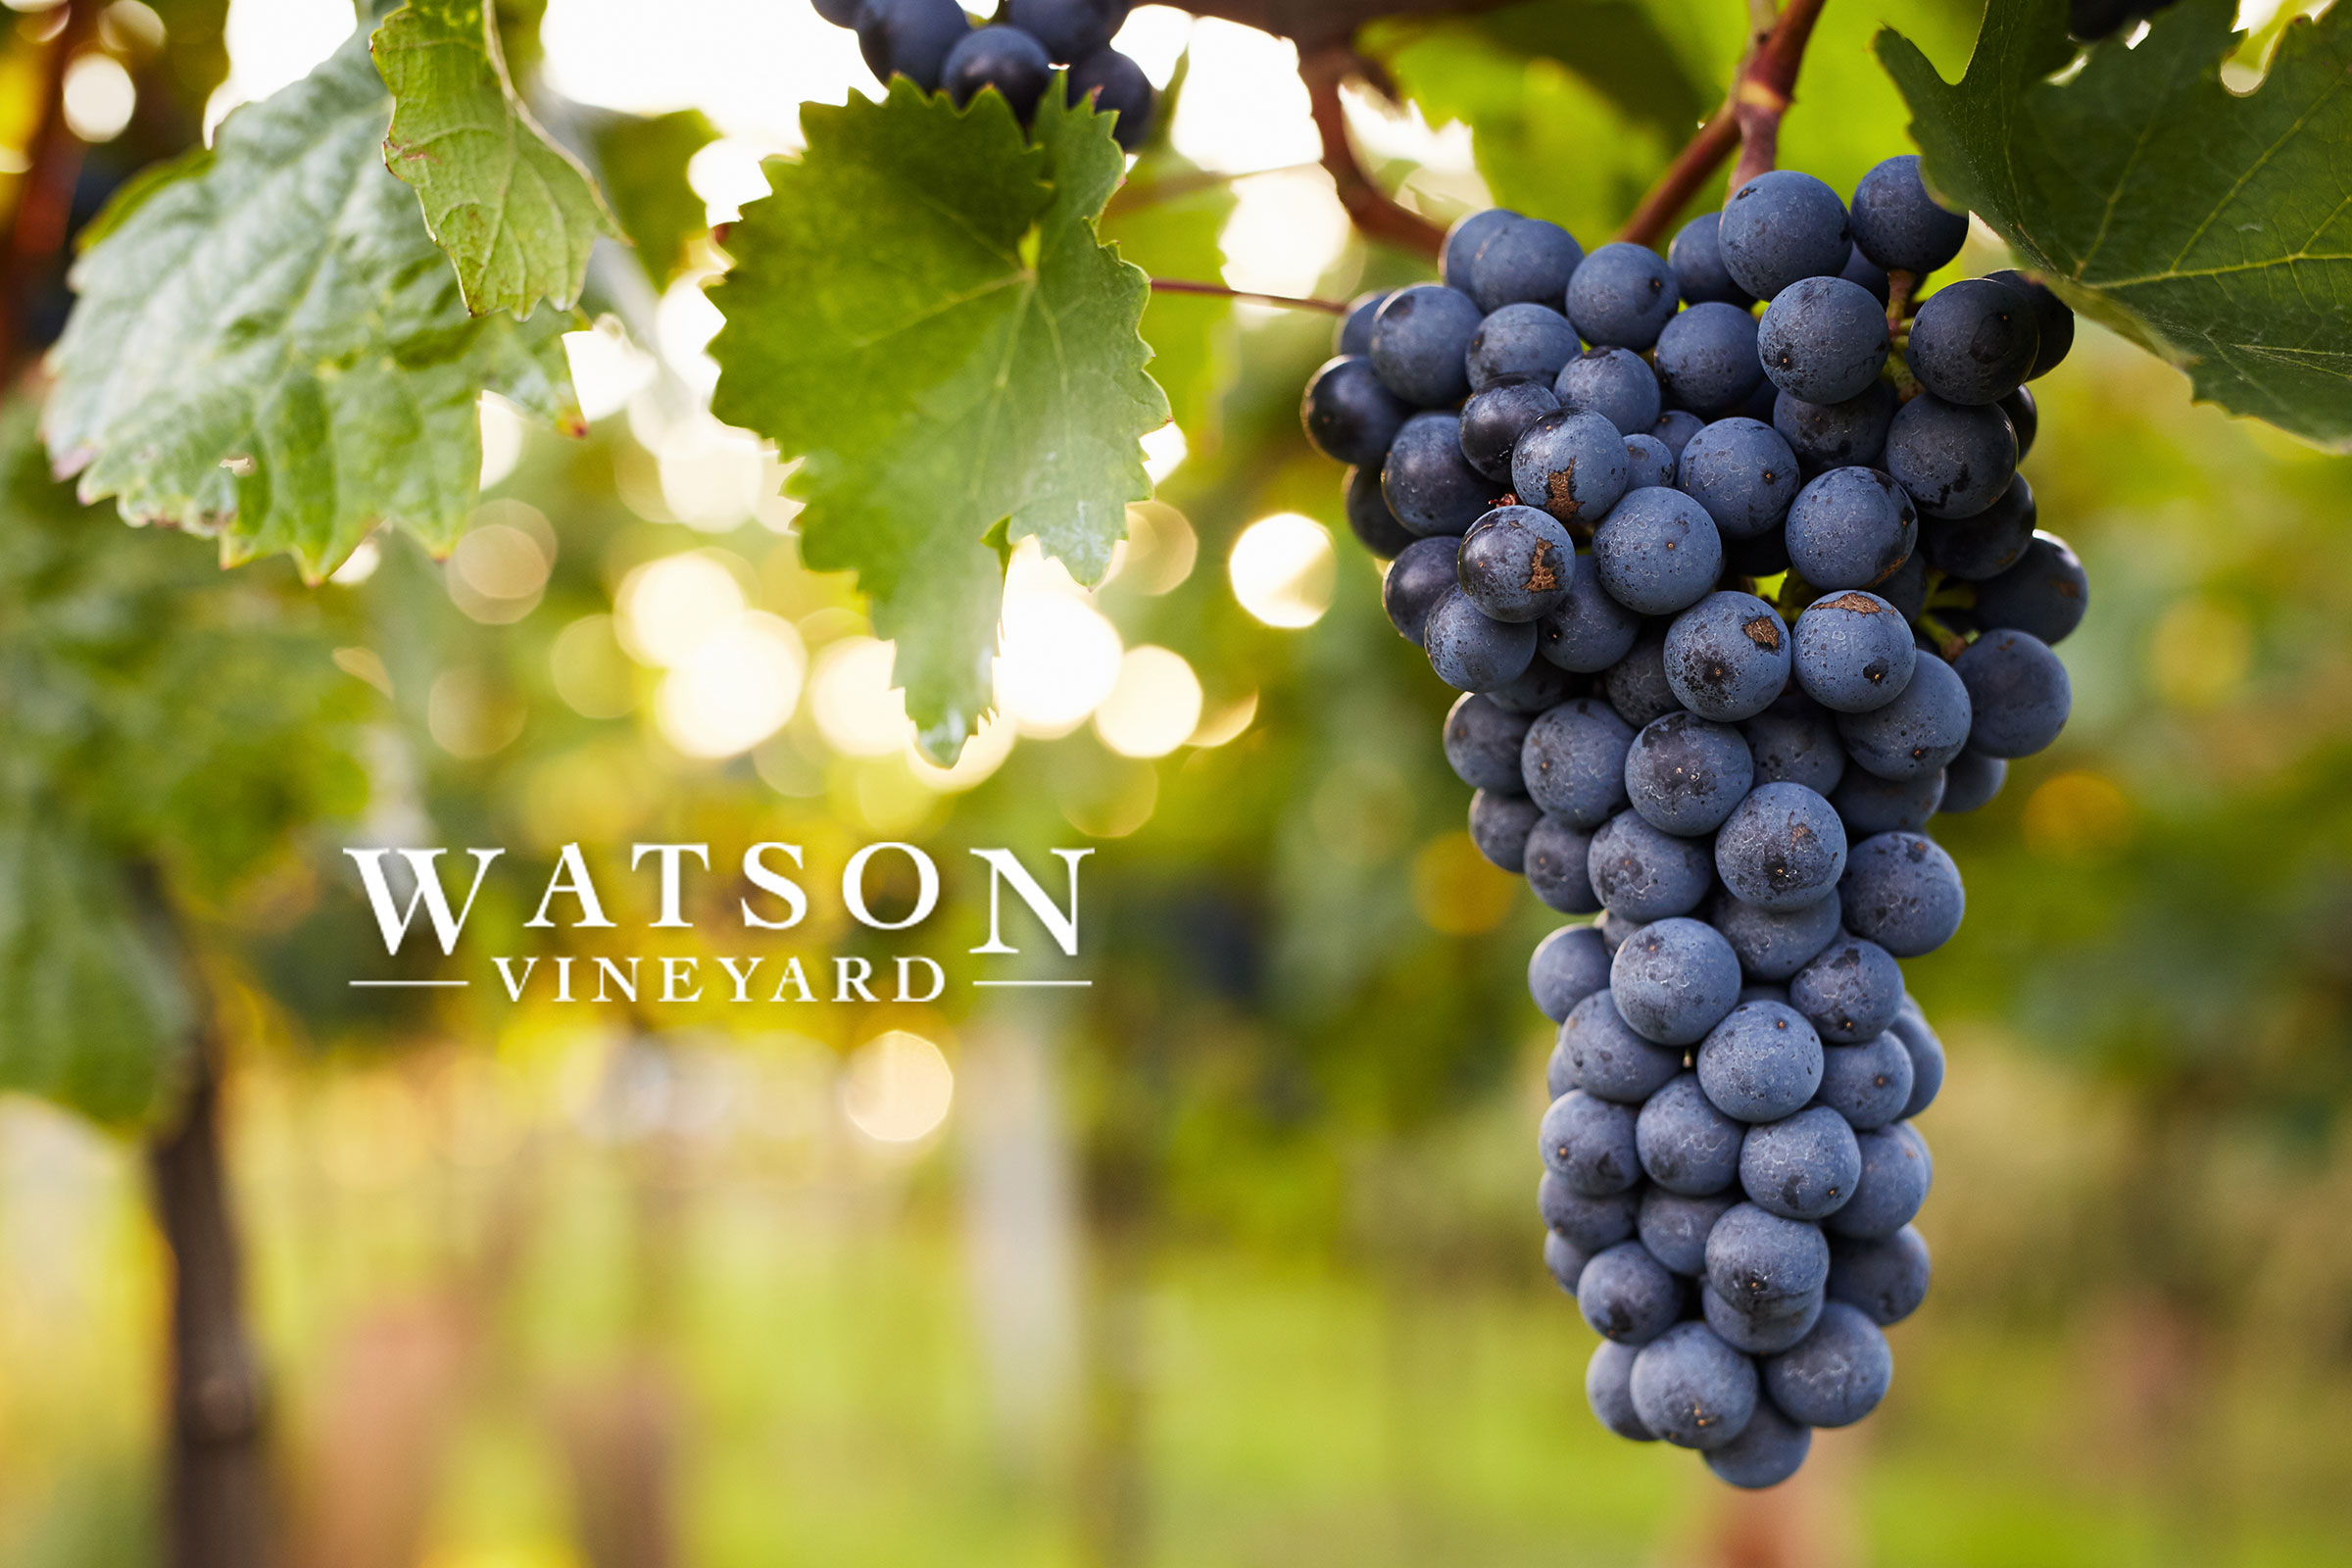 Located in Coleman, Texas, we began developing our vineyard in January of 2011, marking the beginning of our life-long love of growing grapes and producing quality and enjoyable wine for all our fans and future customers!